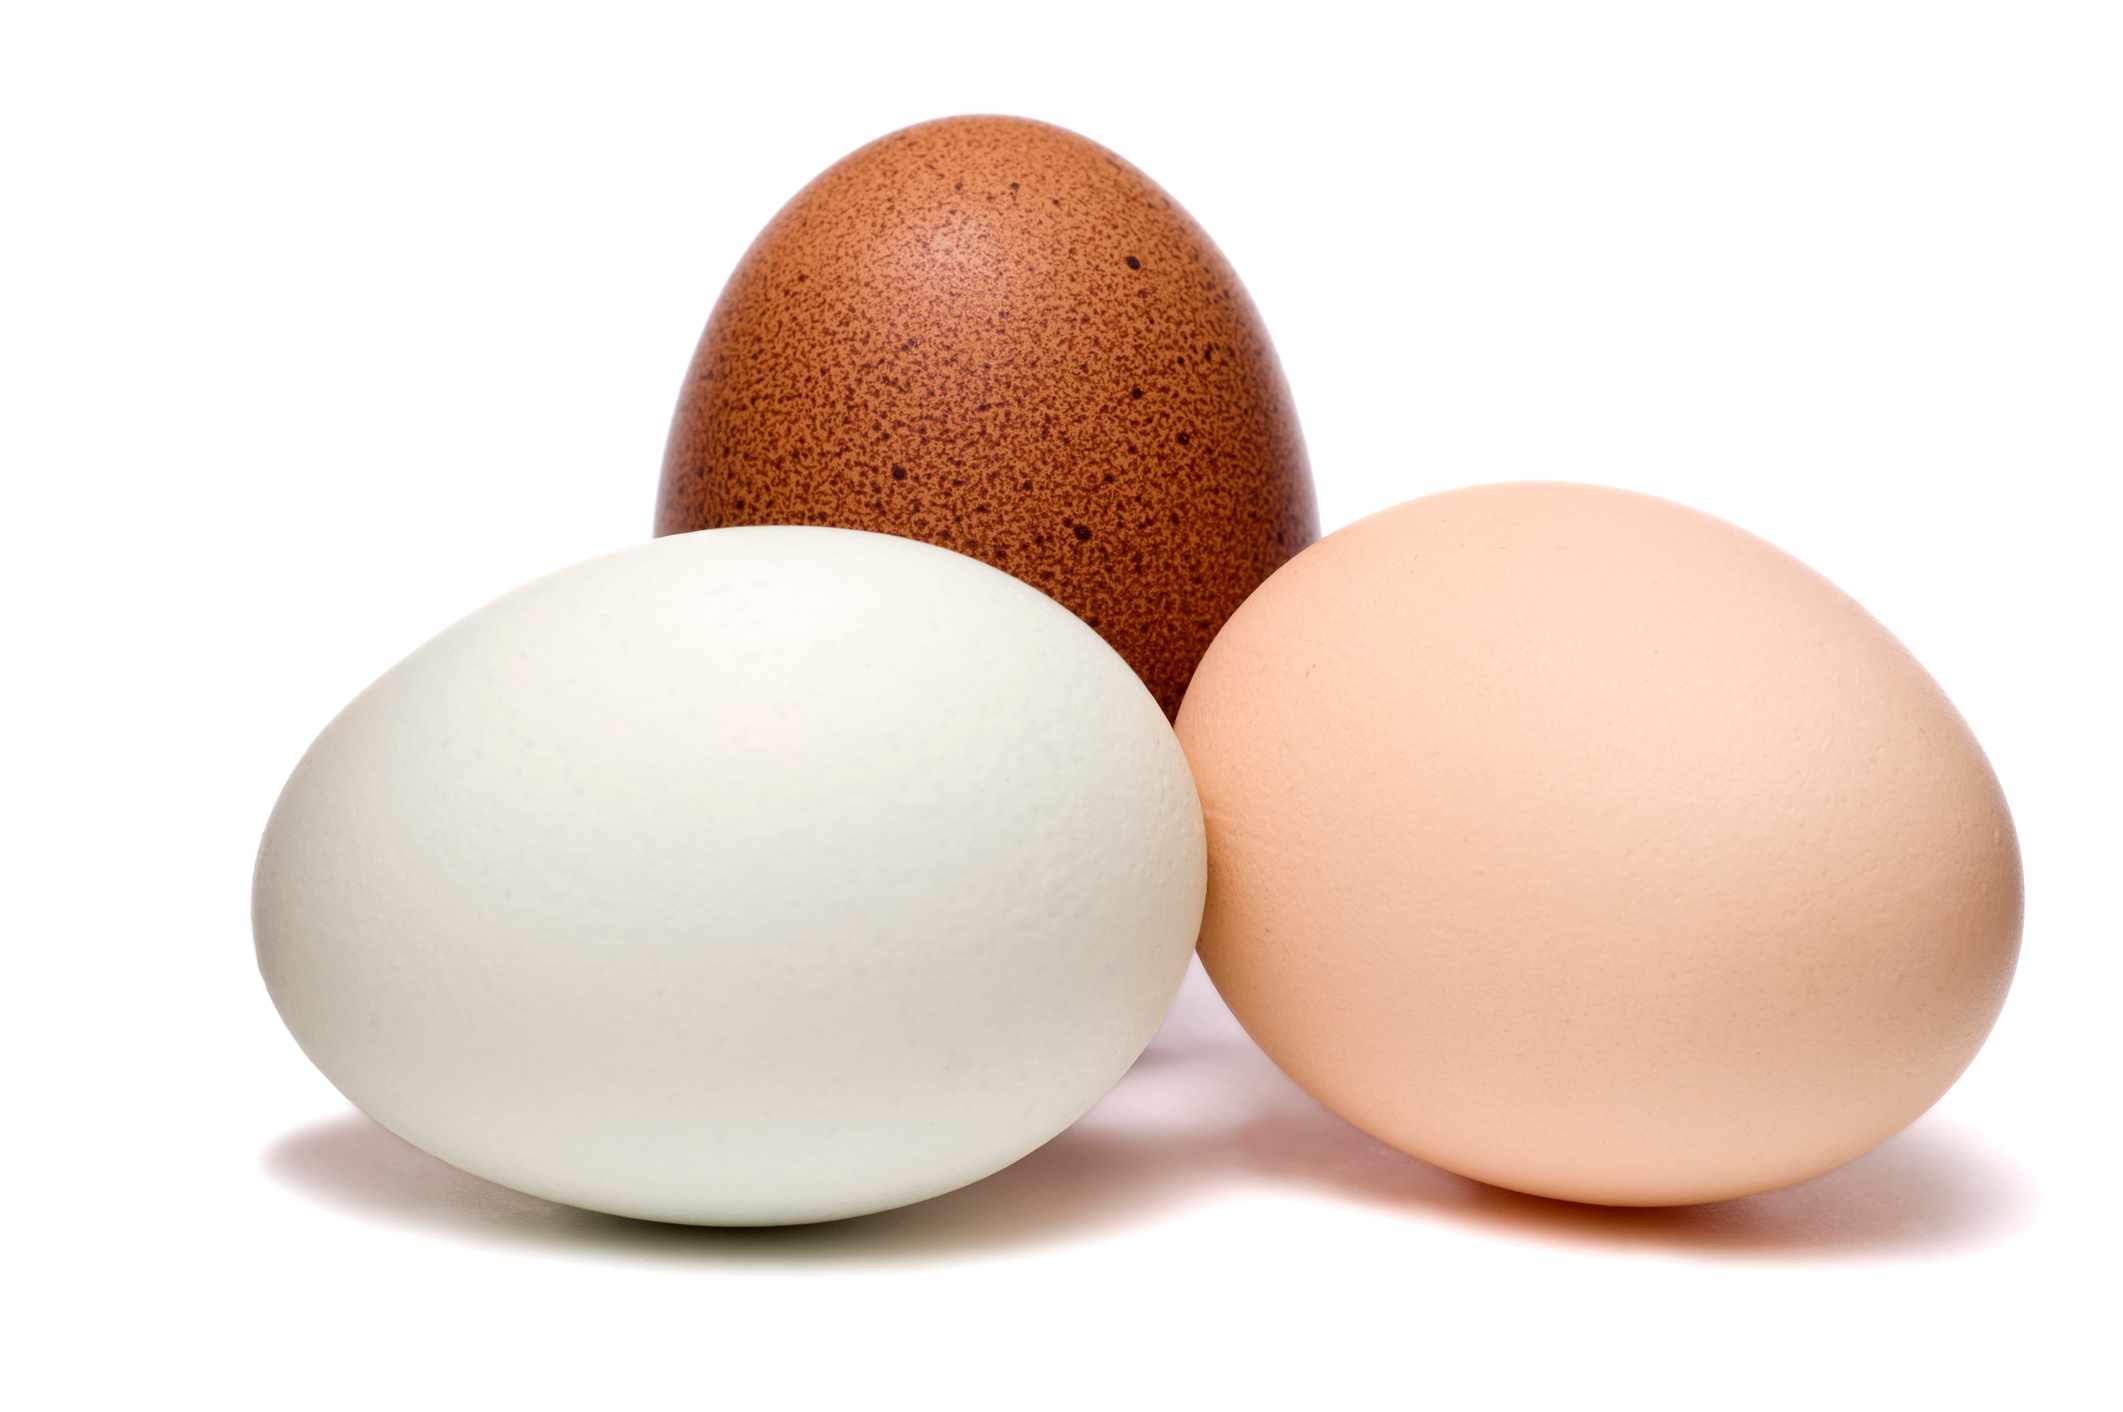 What determines if an egg is brown or white? © Getty Images